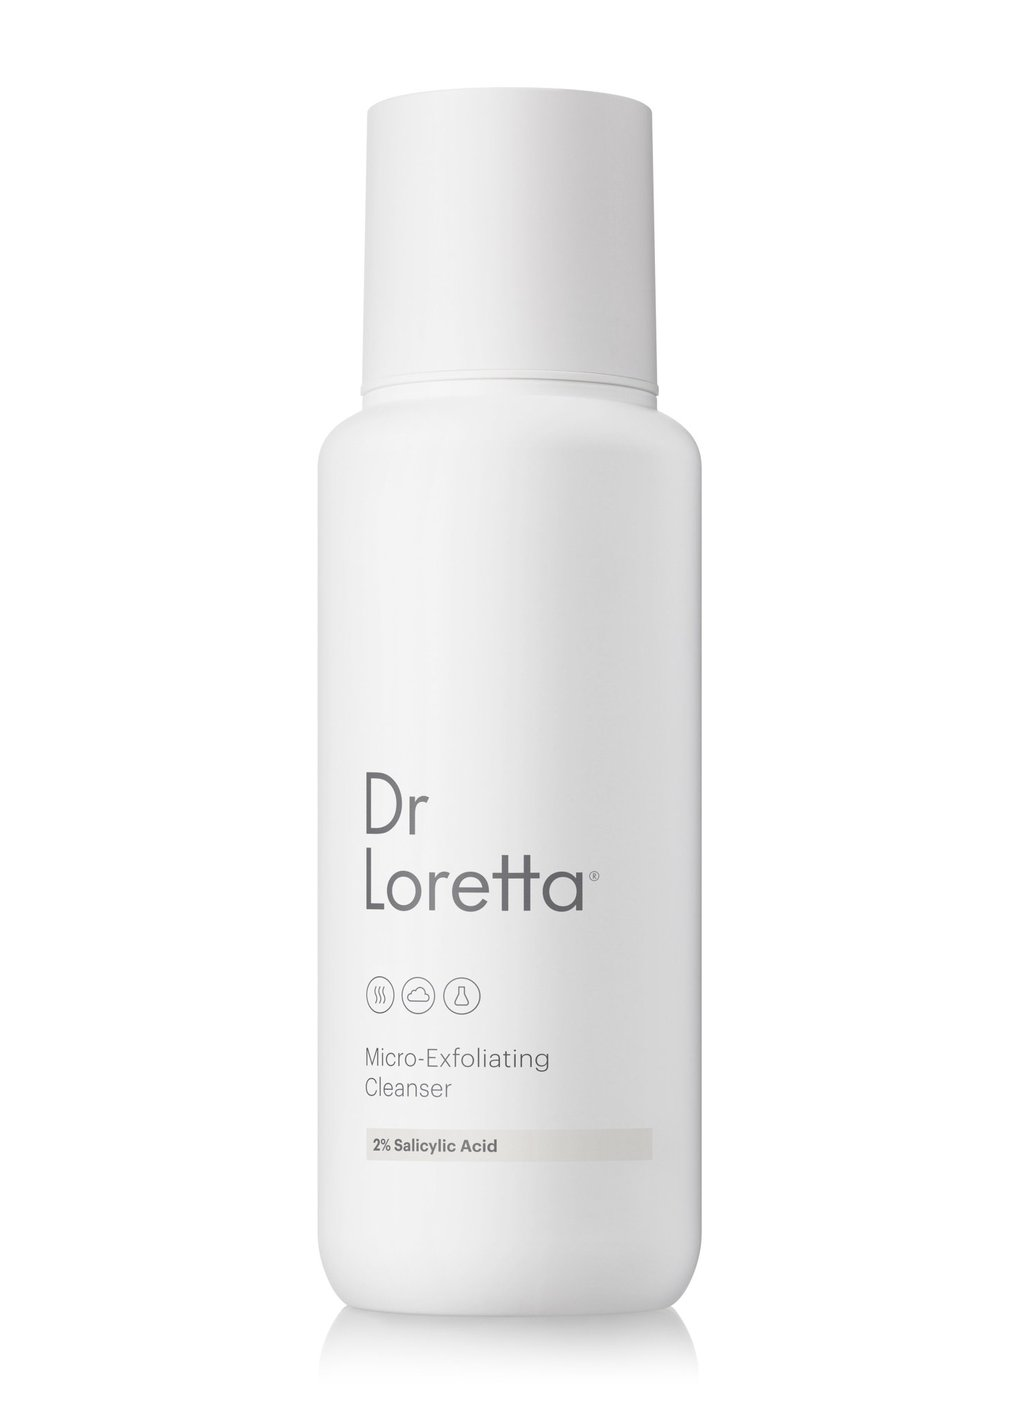 Dr. Loretta Micro Exfoliating Cleanser, effects of hard water on skin and hair